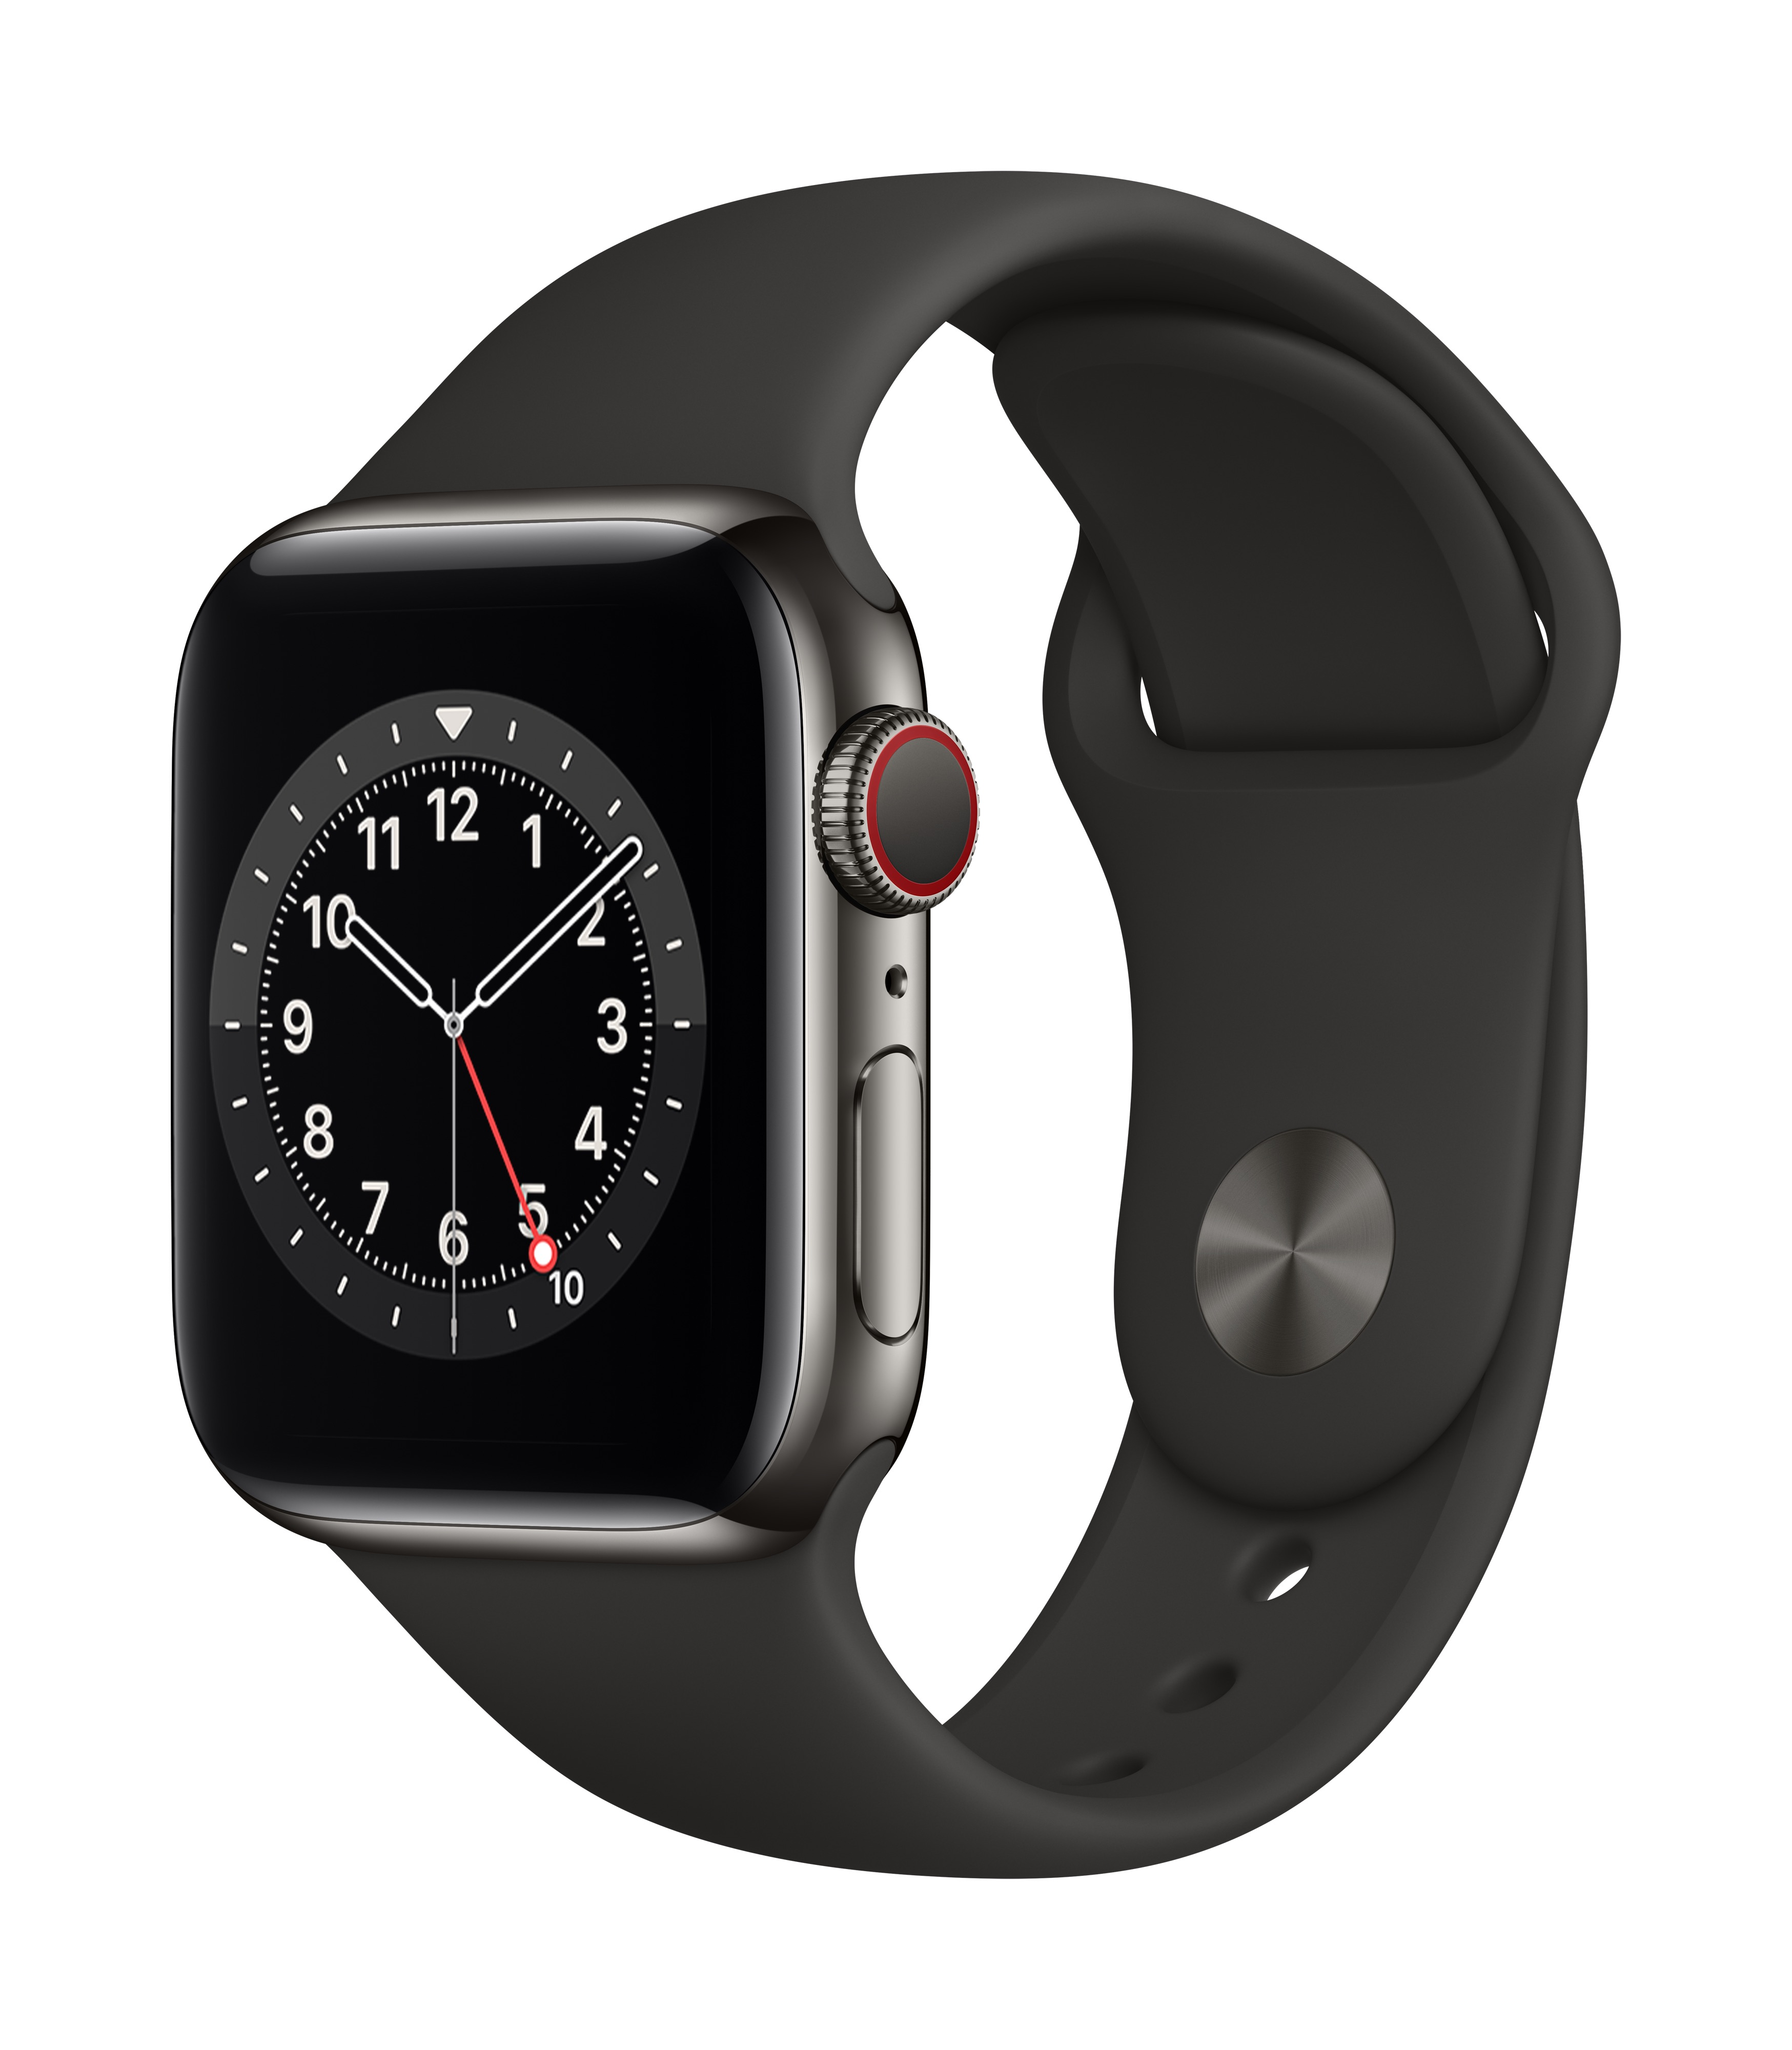 Apple_Watch_Series_6_Cellular_40mm_Graphite_Stainless_Steel_Black_Sport_Band_34R_Screen__USEN